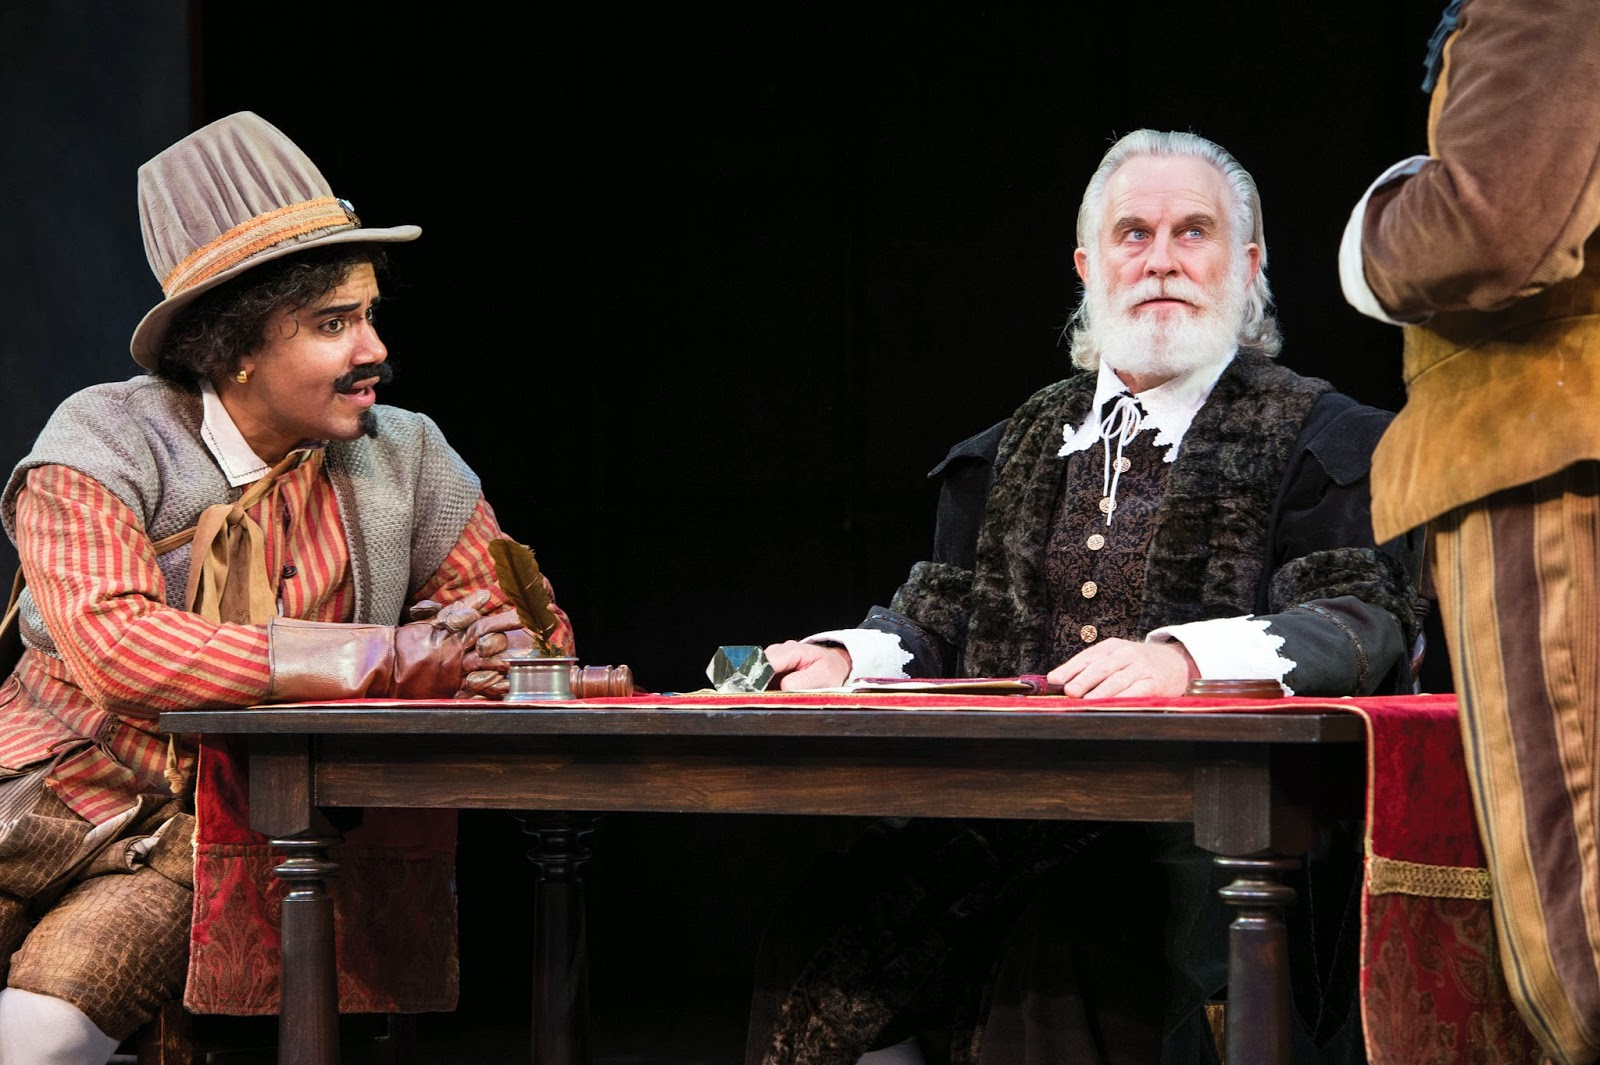 Anthony Simone (left) as Pompey and Henry Woronicz as Escalus Measure for Measure. Photo by Karl Hugh.